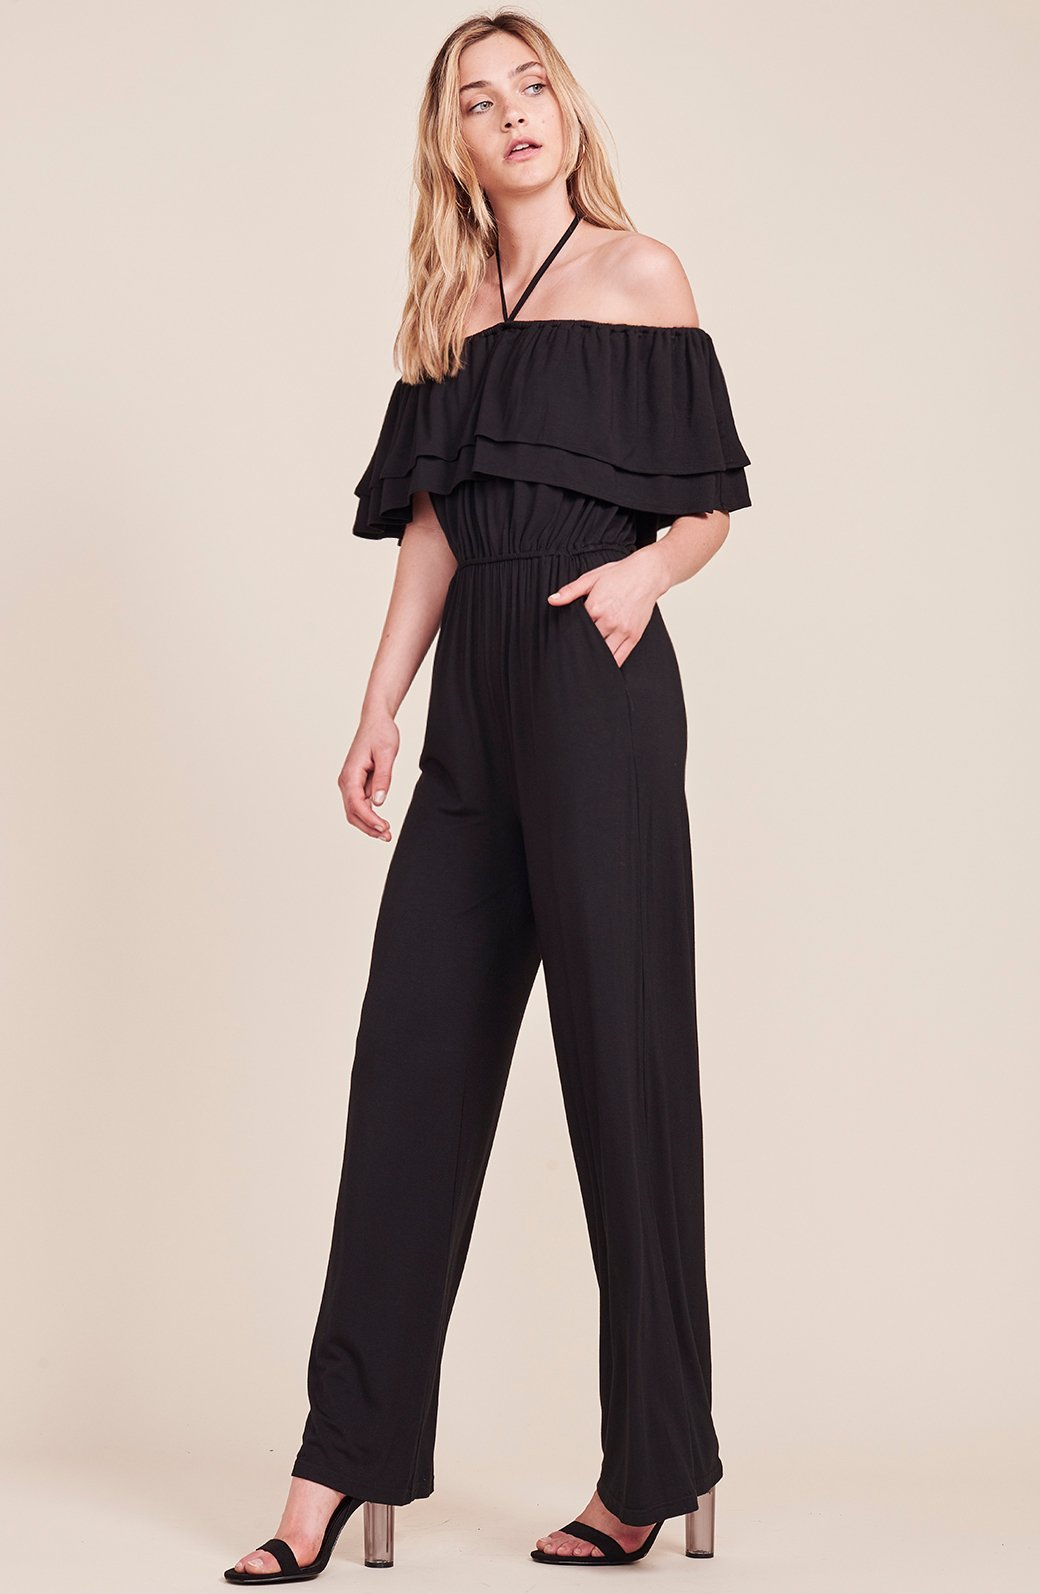 bb dakota jumpsuit 2.jpg